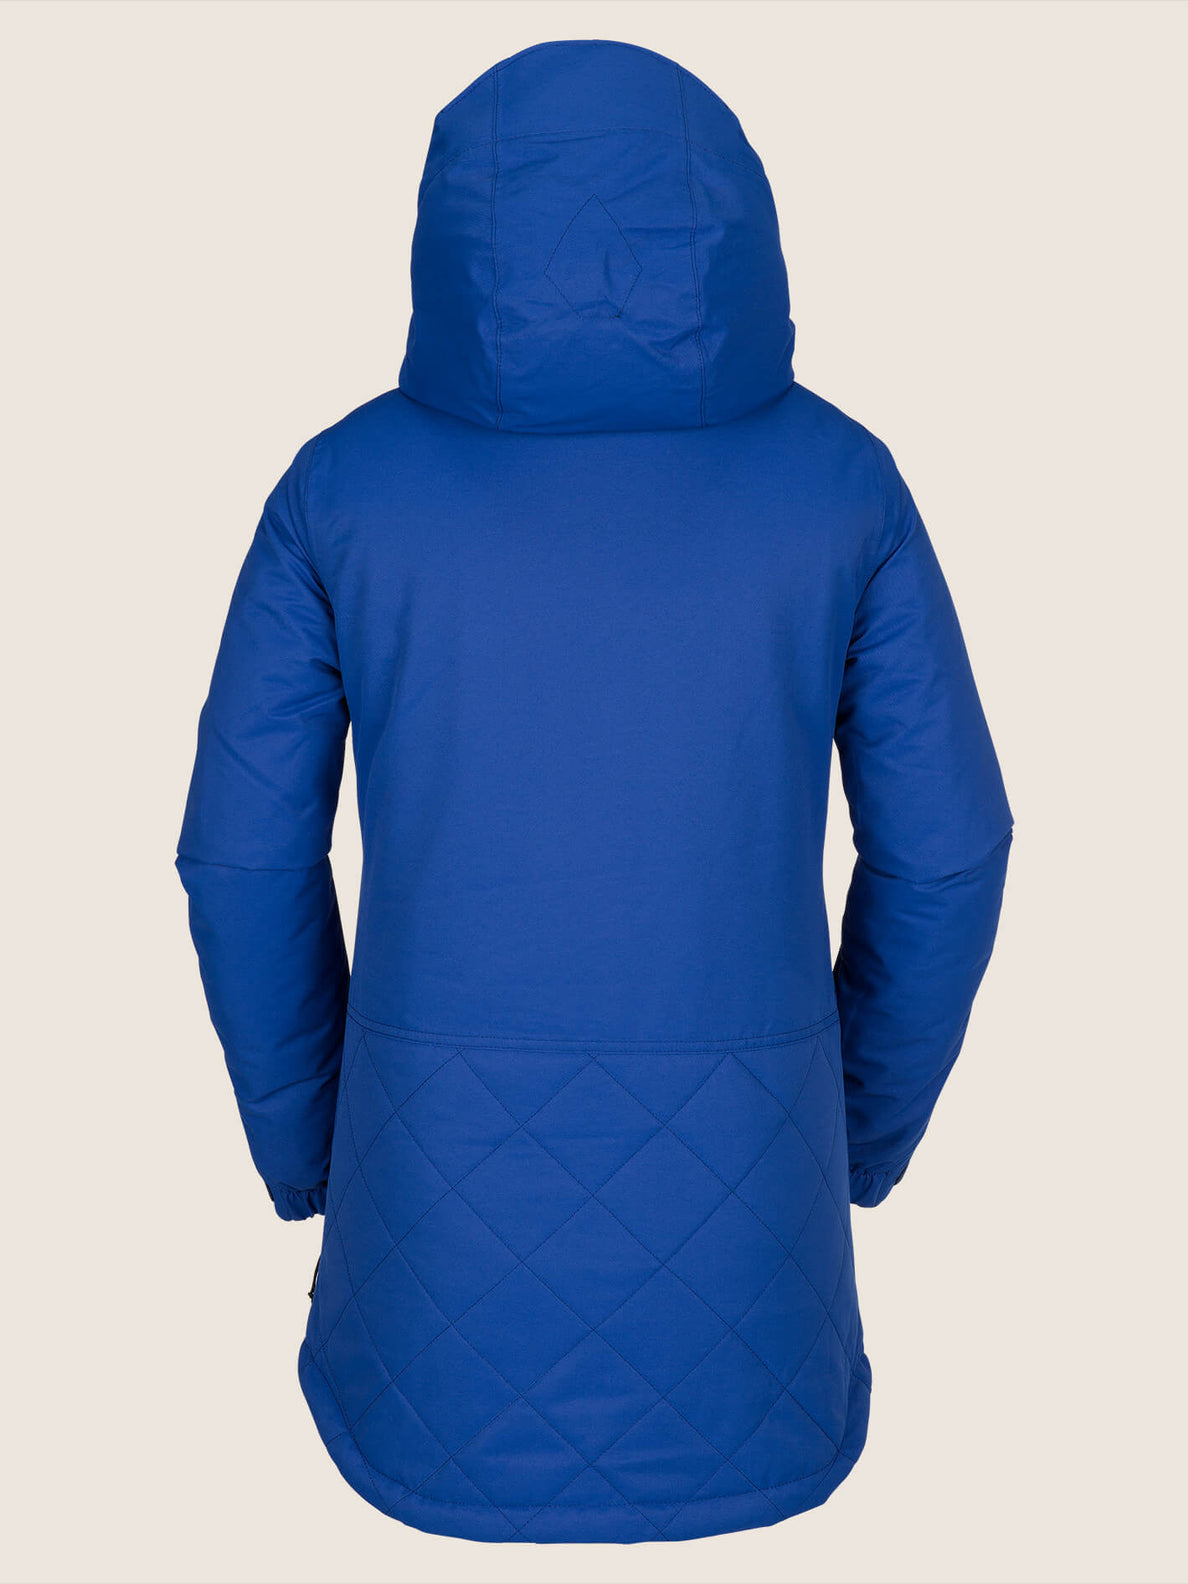 Winrose Insulated Jacket In Electric Blue, Back View